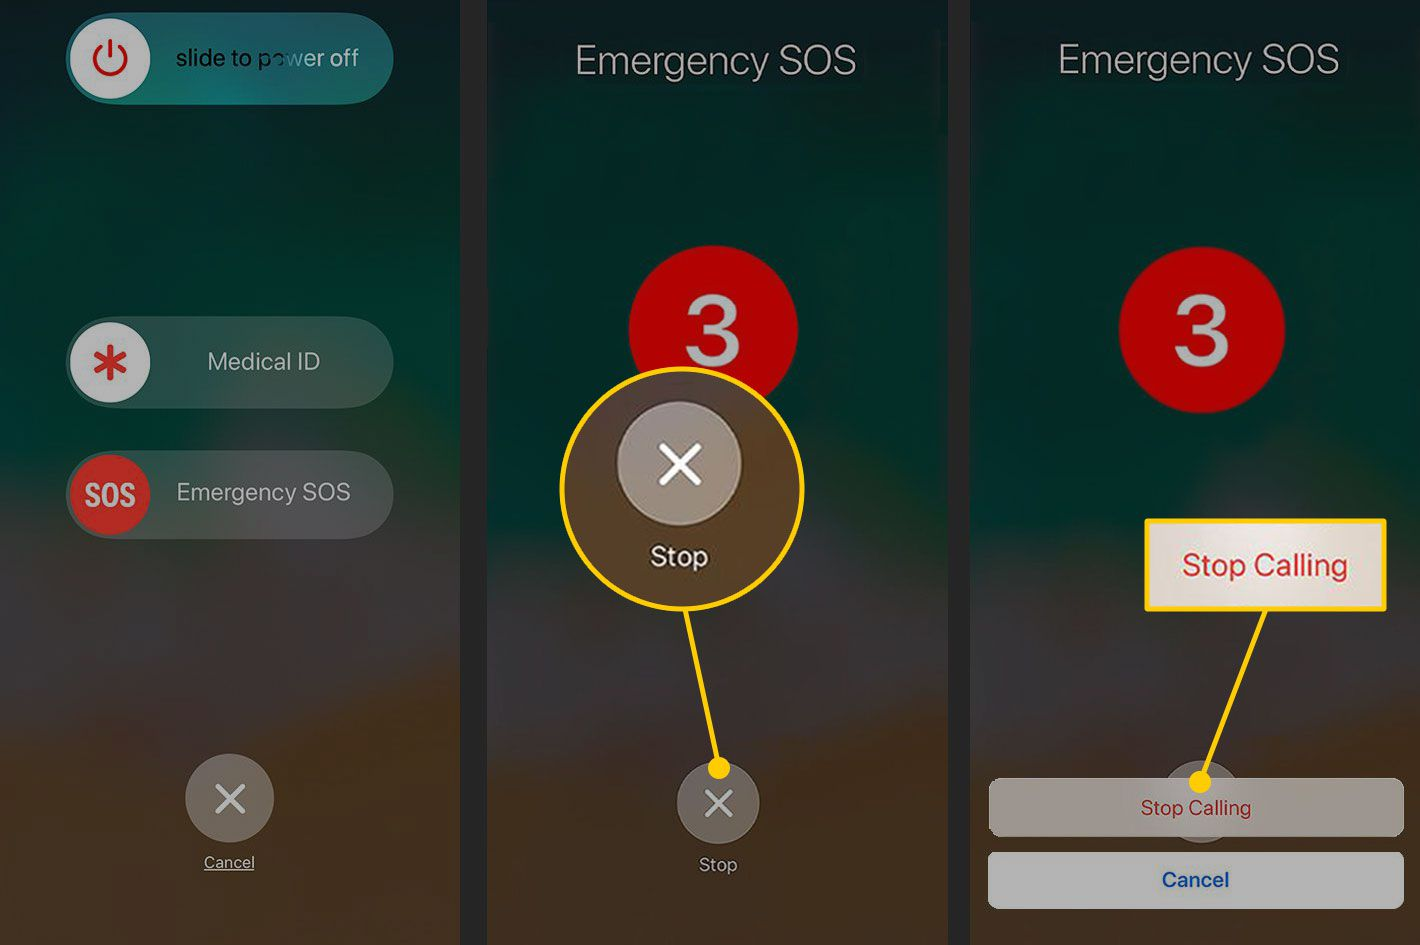 Cancelling an Emergency SOS on an iPhone